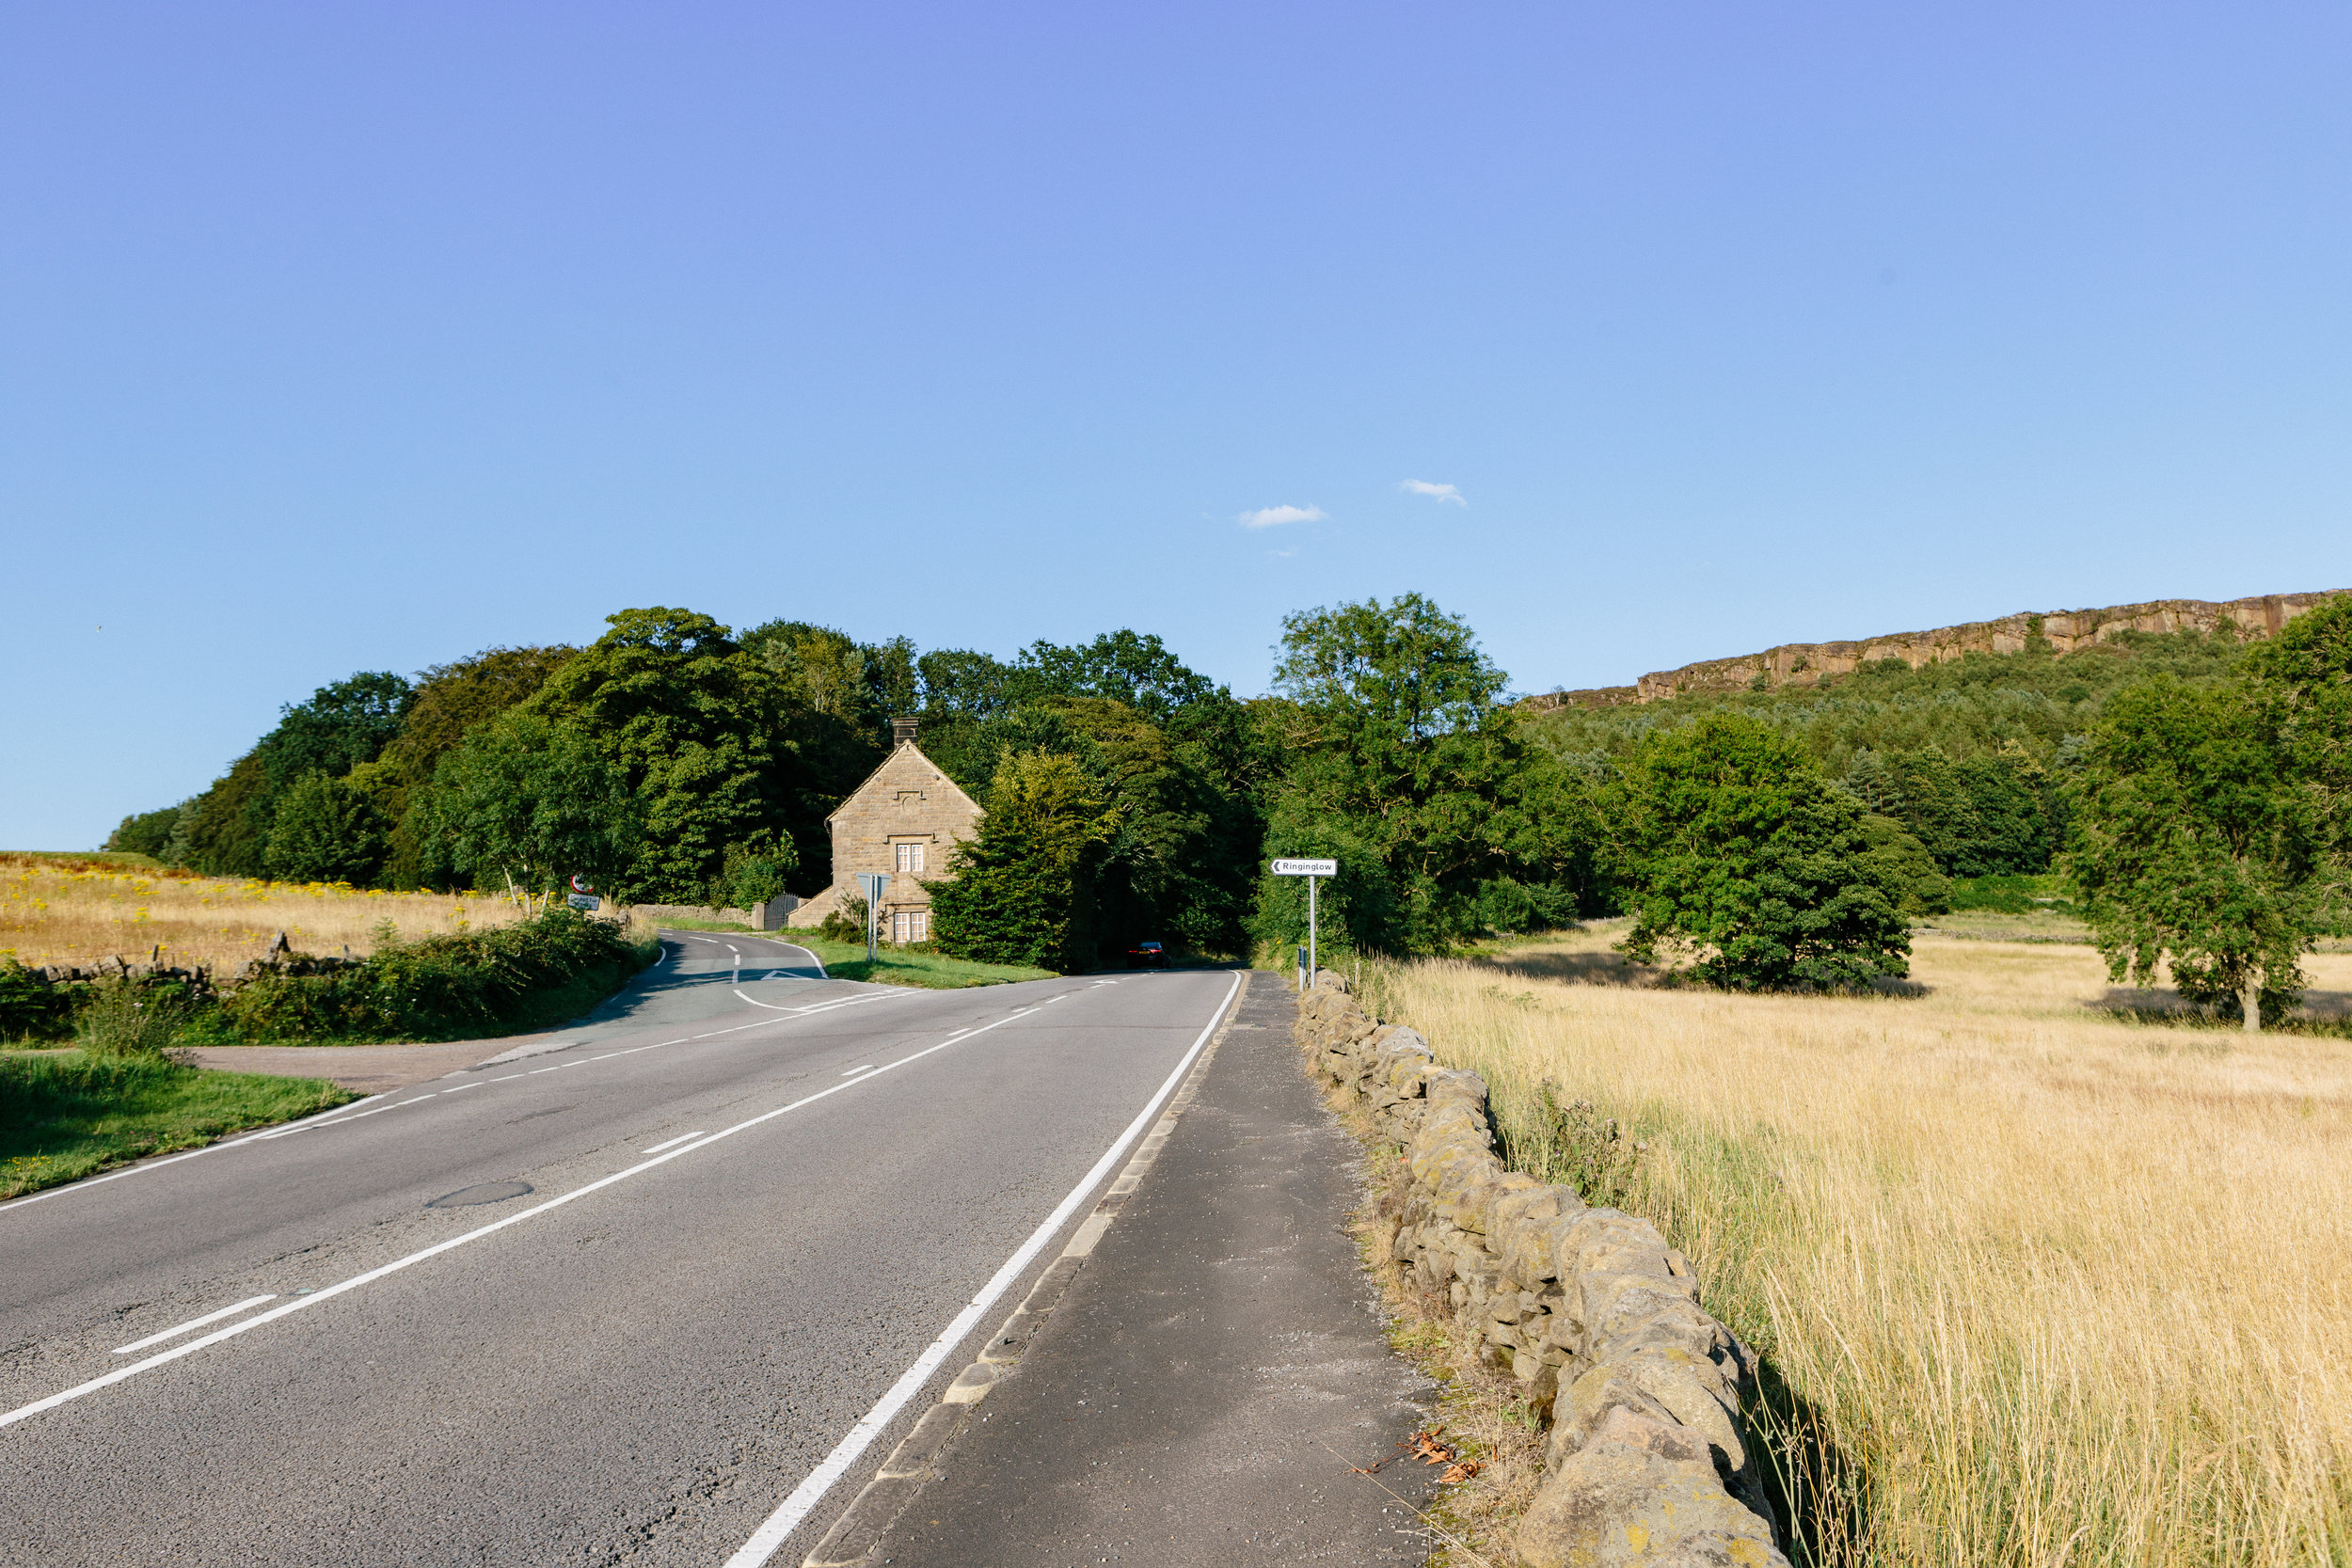 From the main road, take the lane to the left signposted to Ringinglow